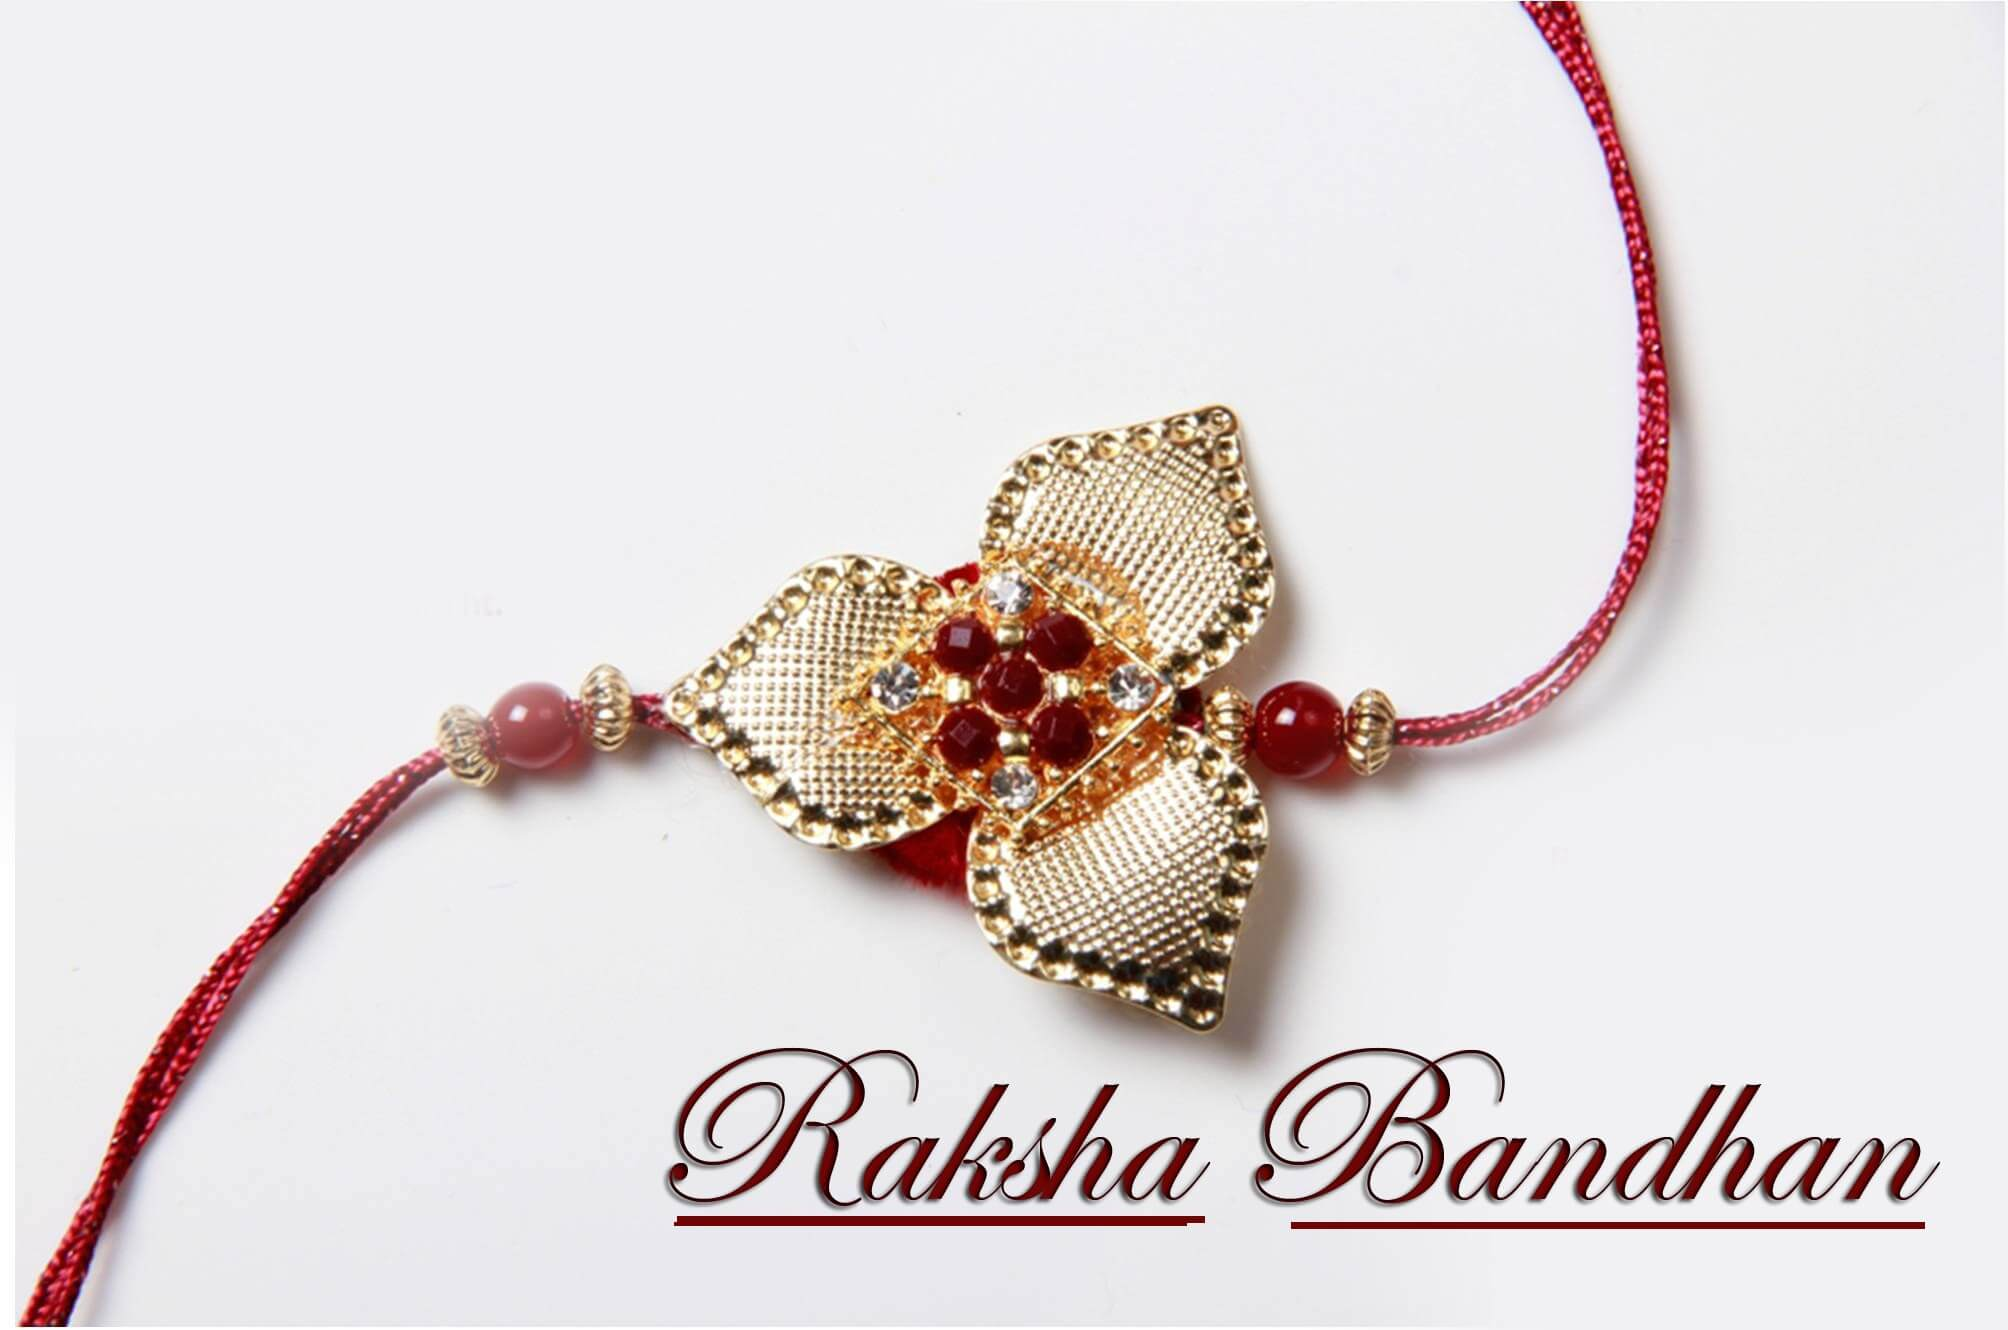 happy raksha bandhan rakhi greetings wishes hd wallpaper